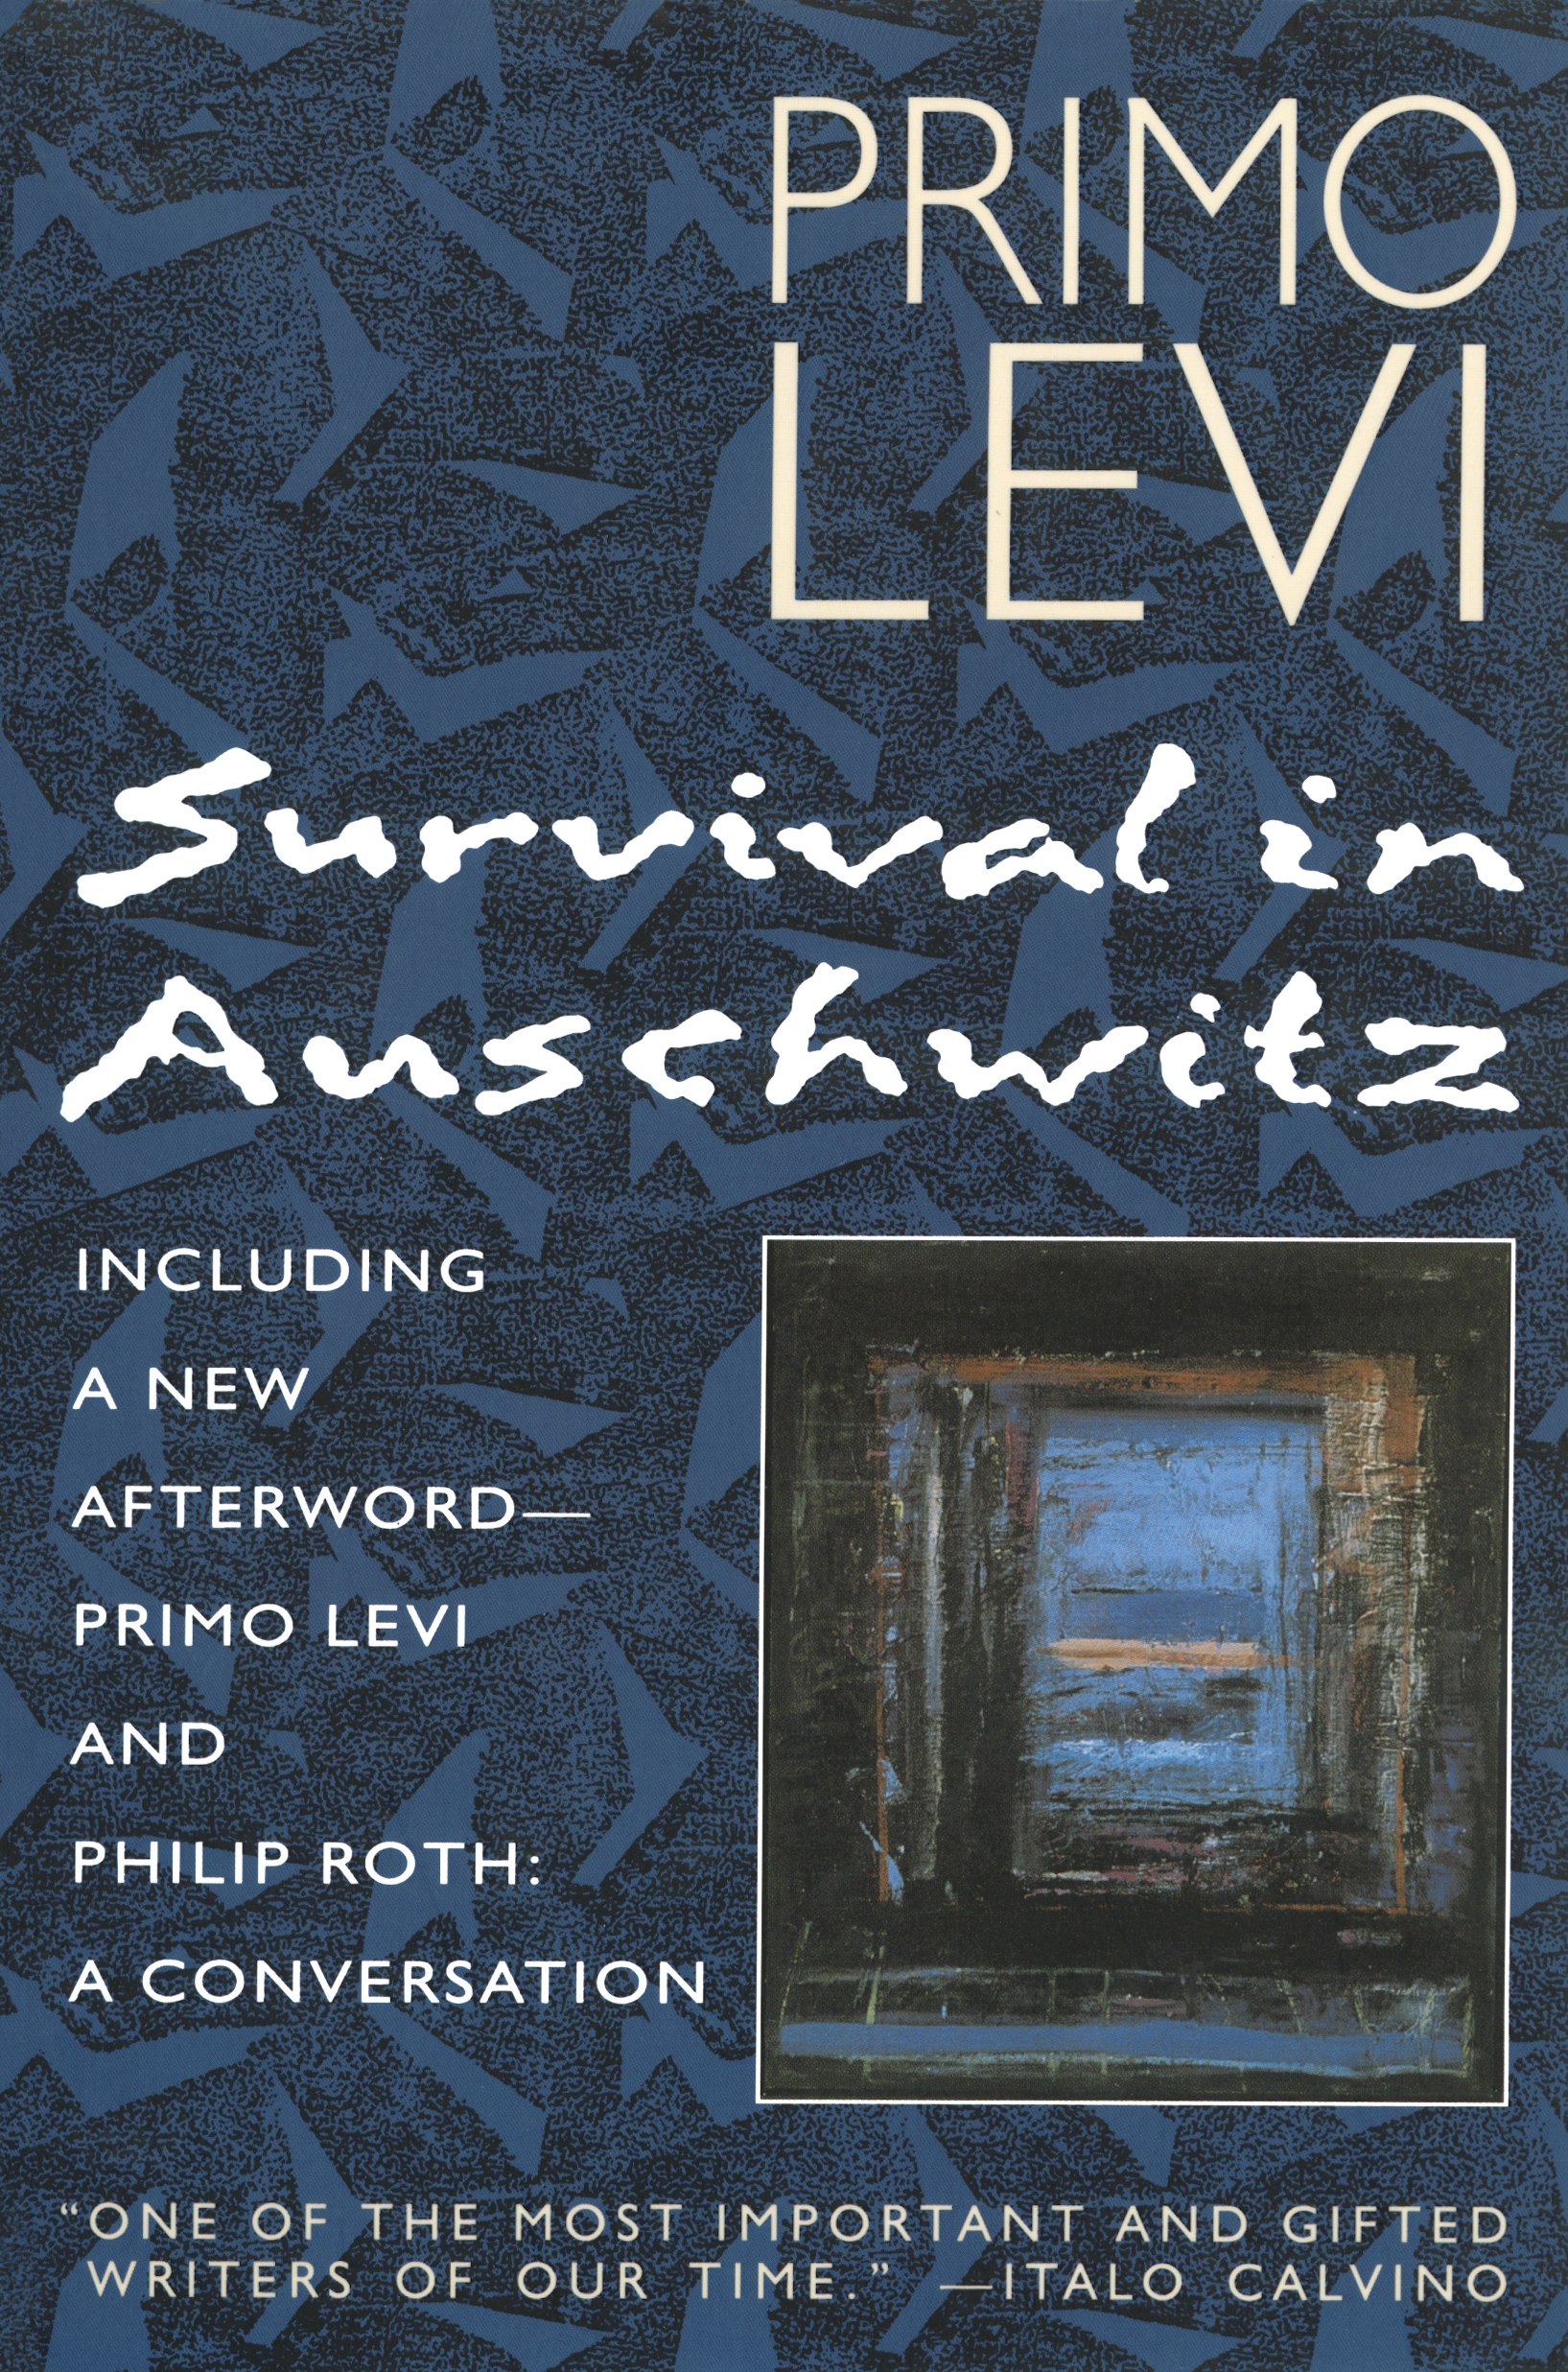 an analysis of primo levis survival in auschwitz The striking thing about primo levi's testimony, survival in auschwitz, is that the germans barely figure in his account at all it is a book about the holocaust in which the ultimate perpetrators are almost entirely absent in so far as they do appear, they are seen from a distance, glimpsed .